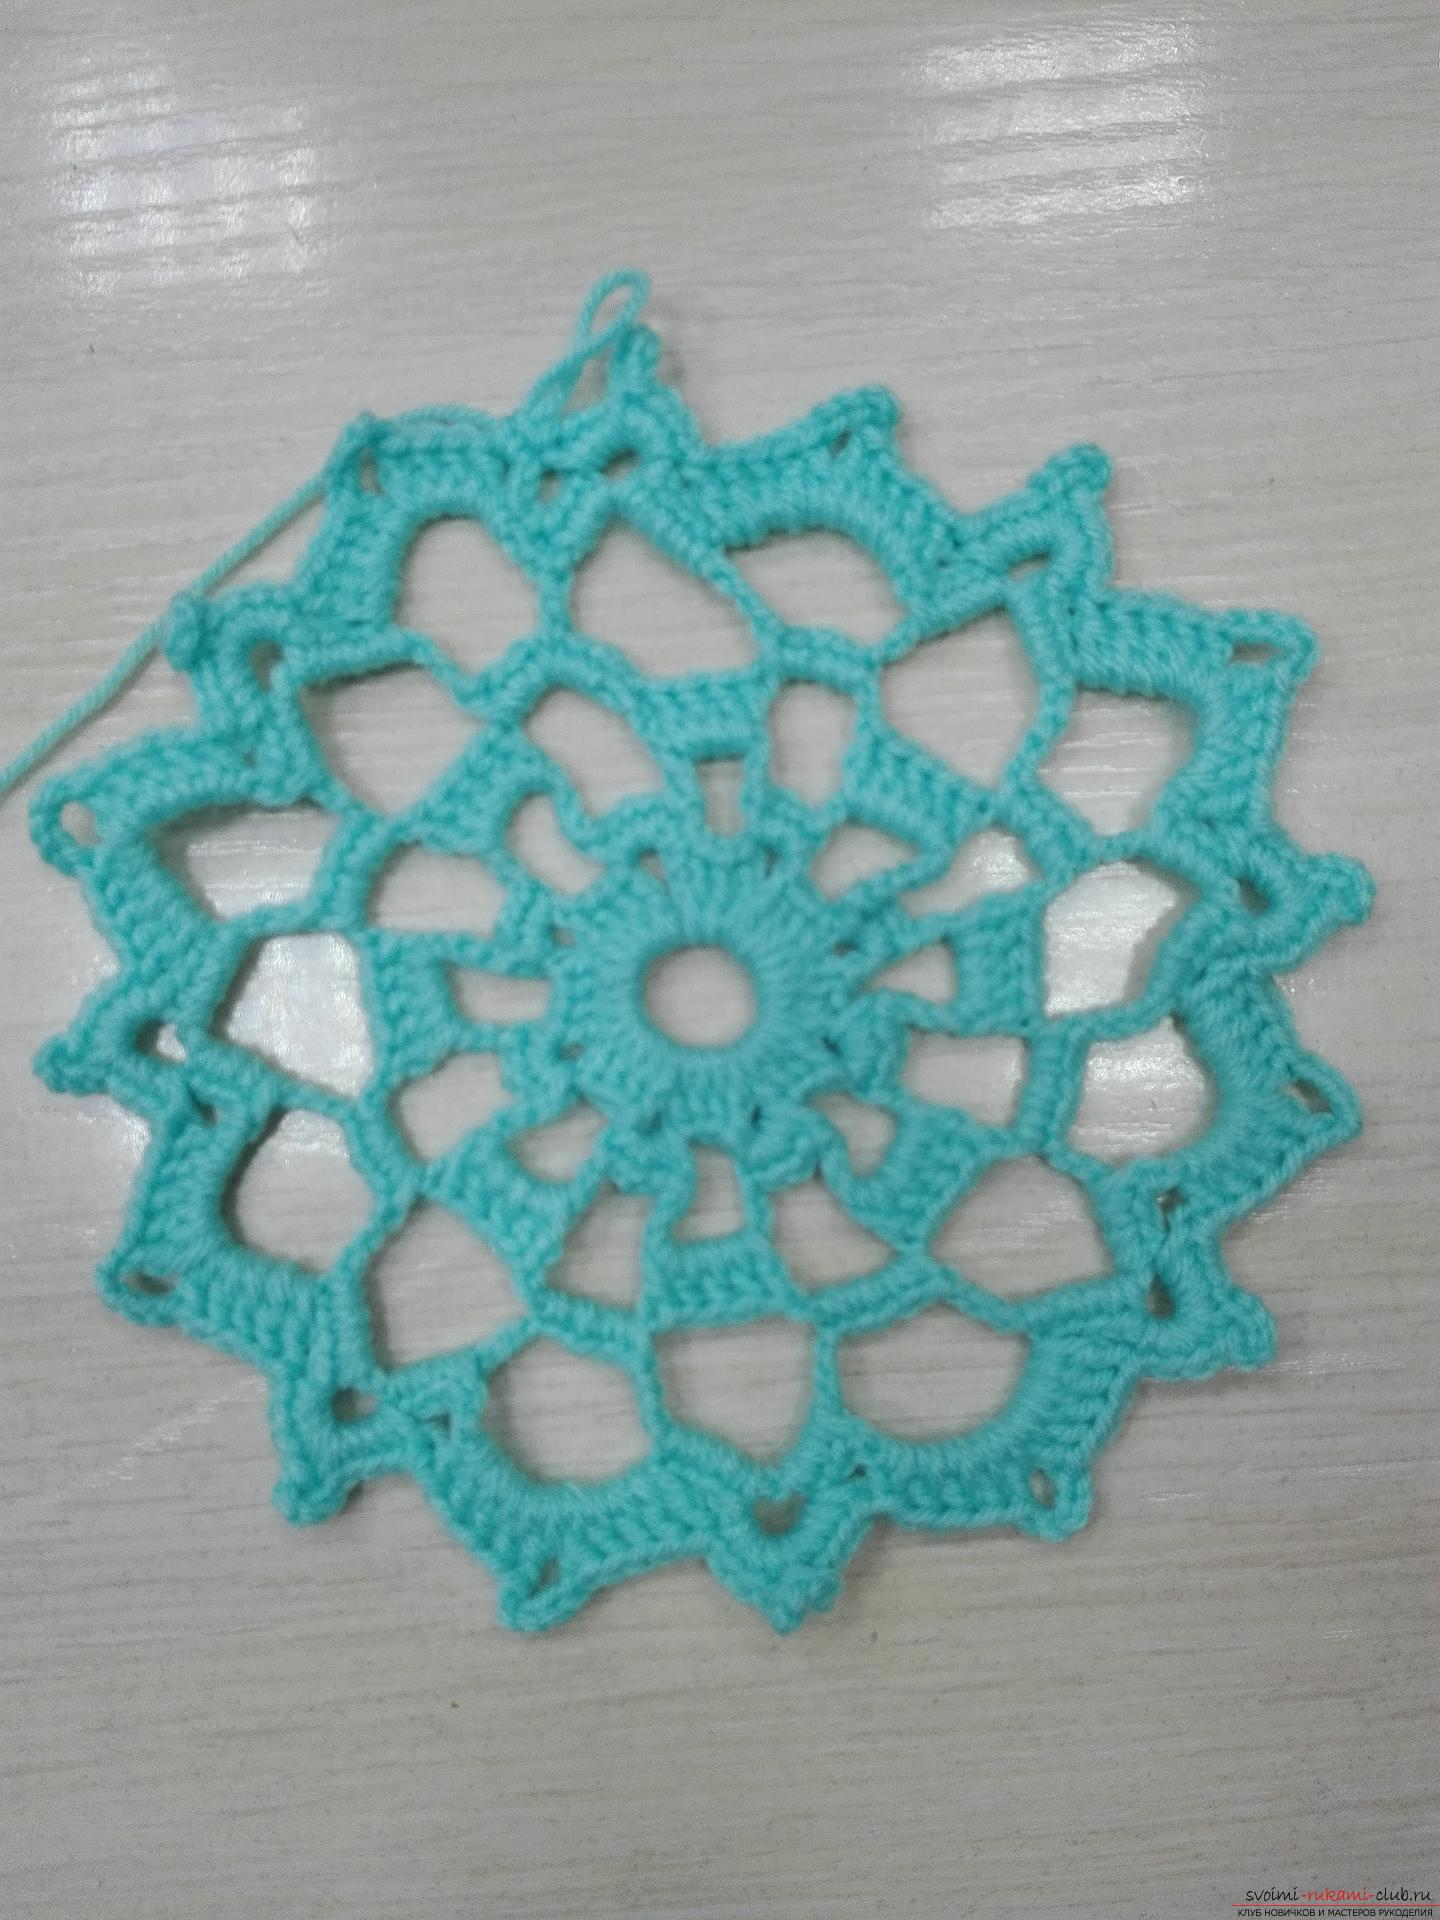 A master class on crocheting an openwork napkin will be clear even for beginners. Photo №13